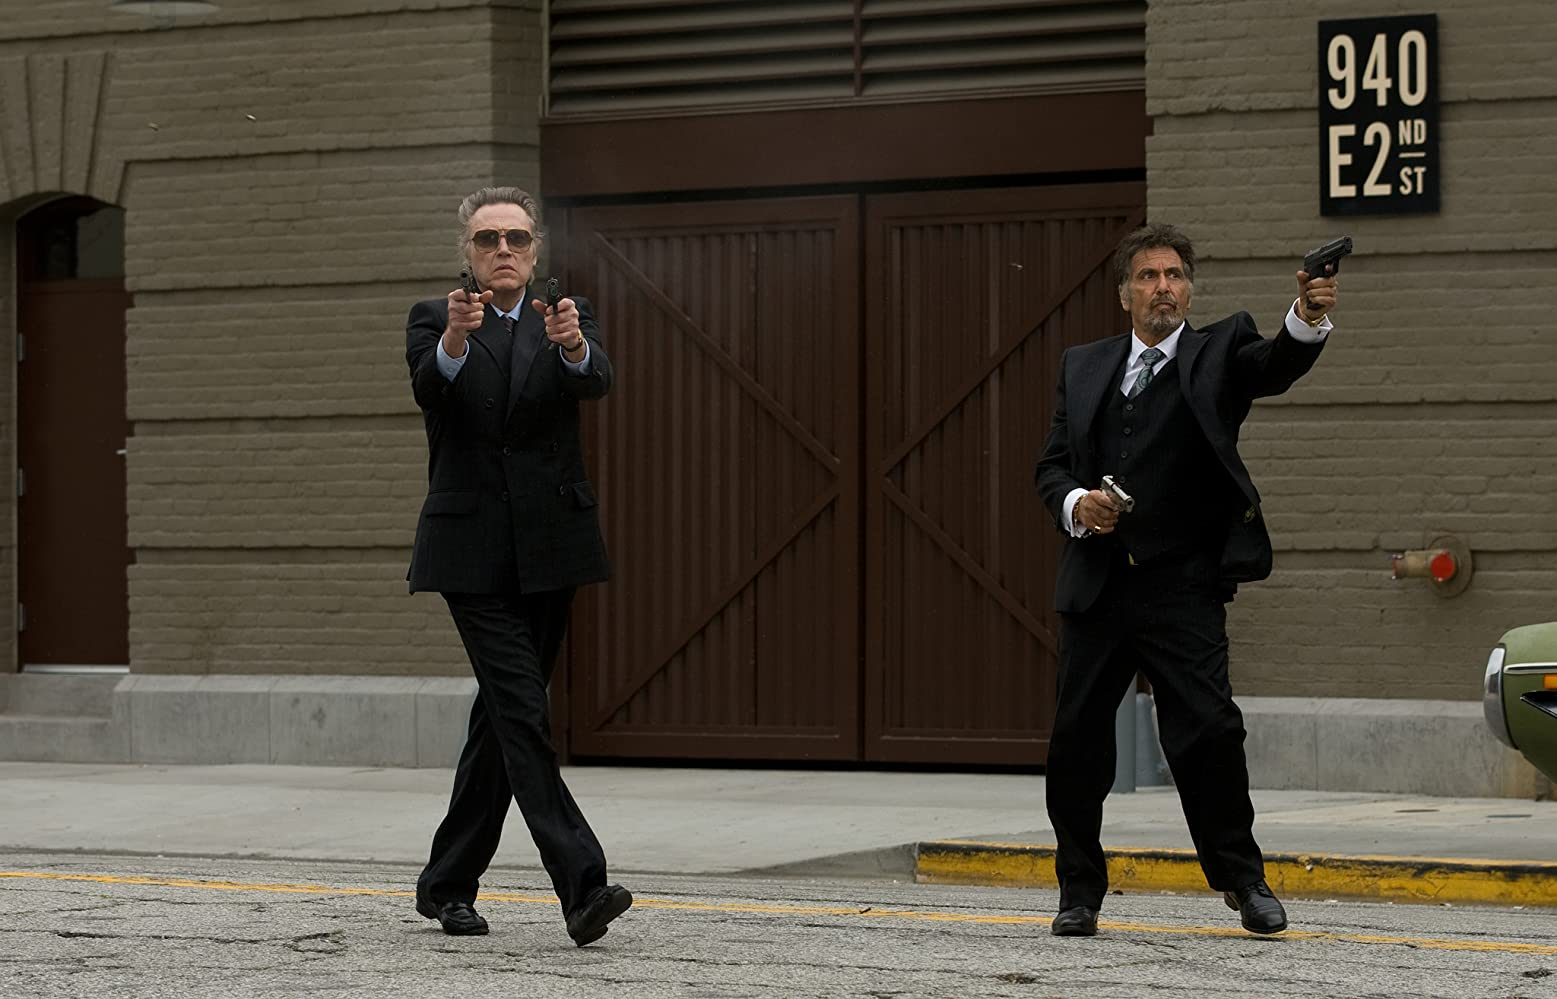 Al Pacino and Christopher Walken in Stand Up Guys (2012)